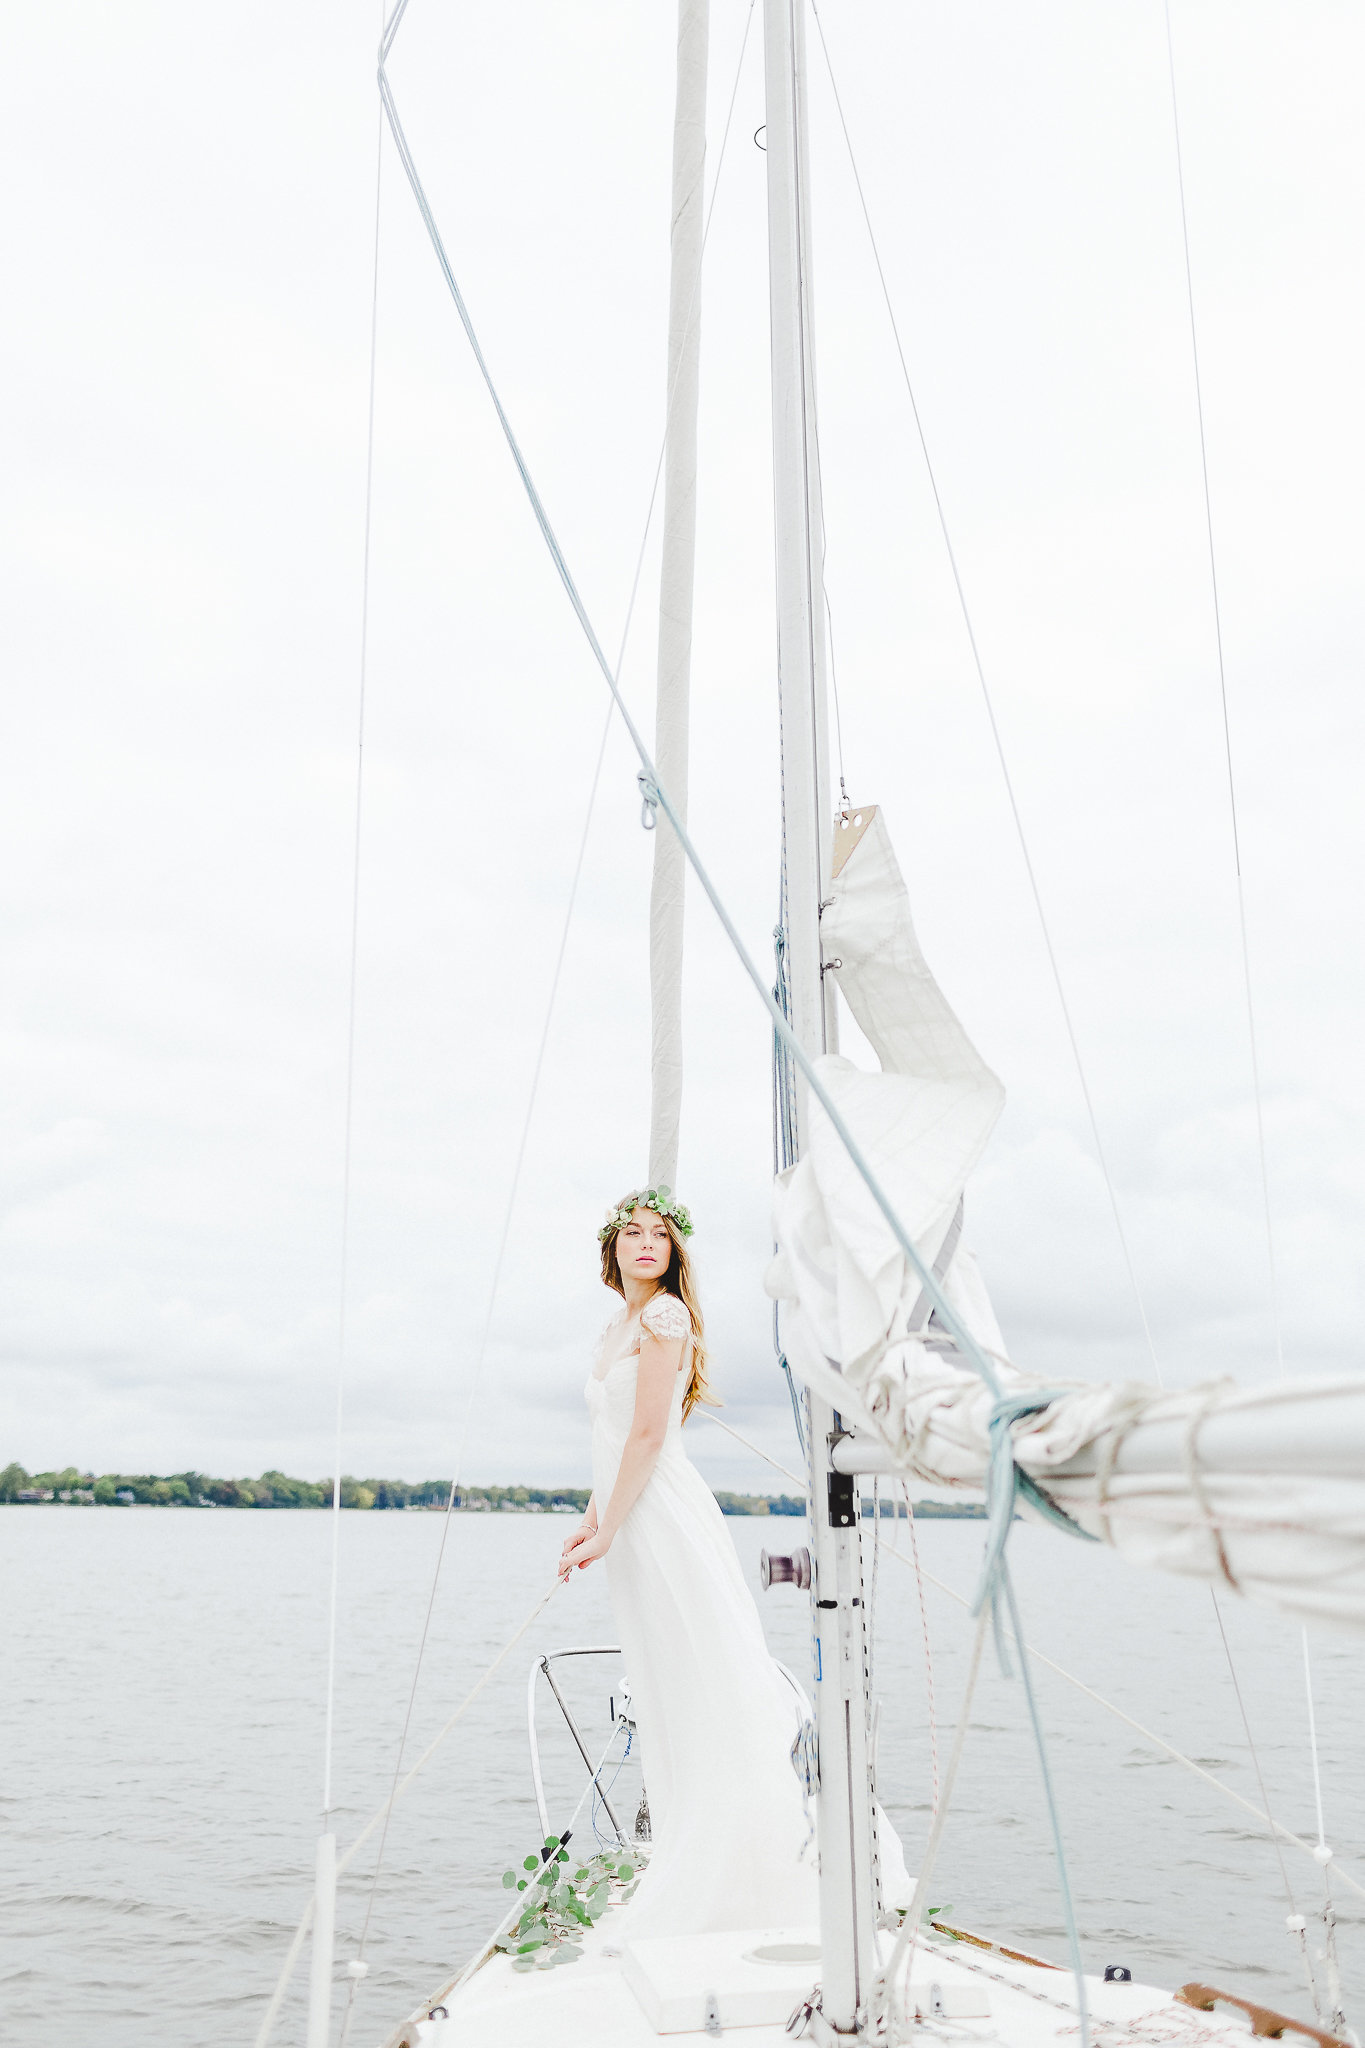 photographe-mariage-montreal-west-island-lisa-renault-photographie-montreal-wedding-photographer-57